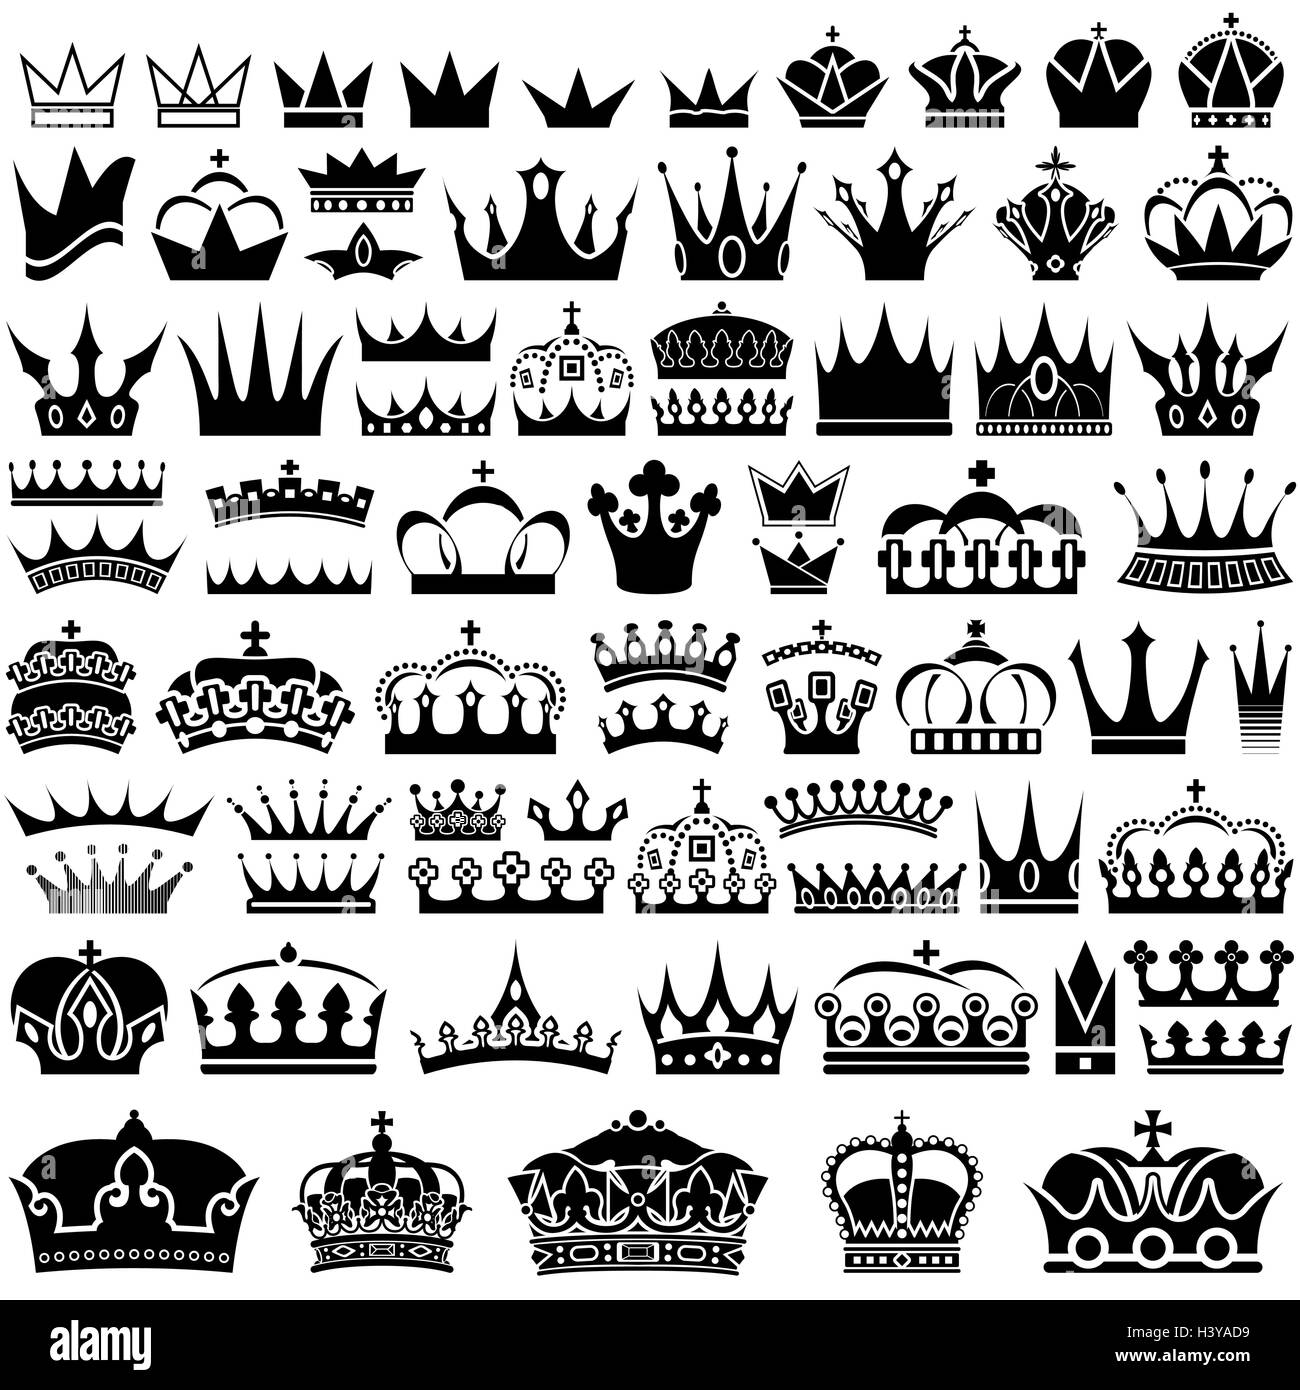 Crown Collection - Stock Image